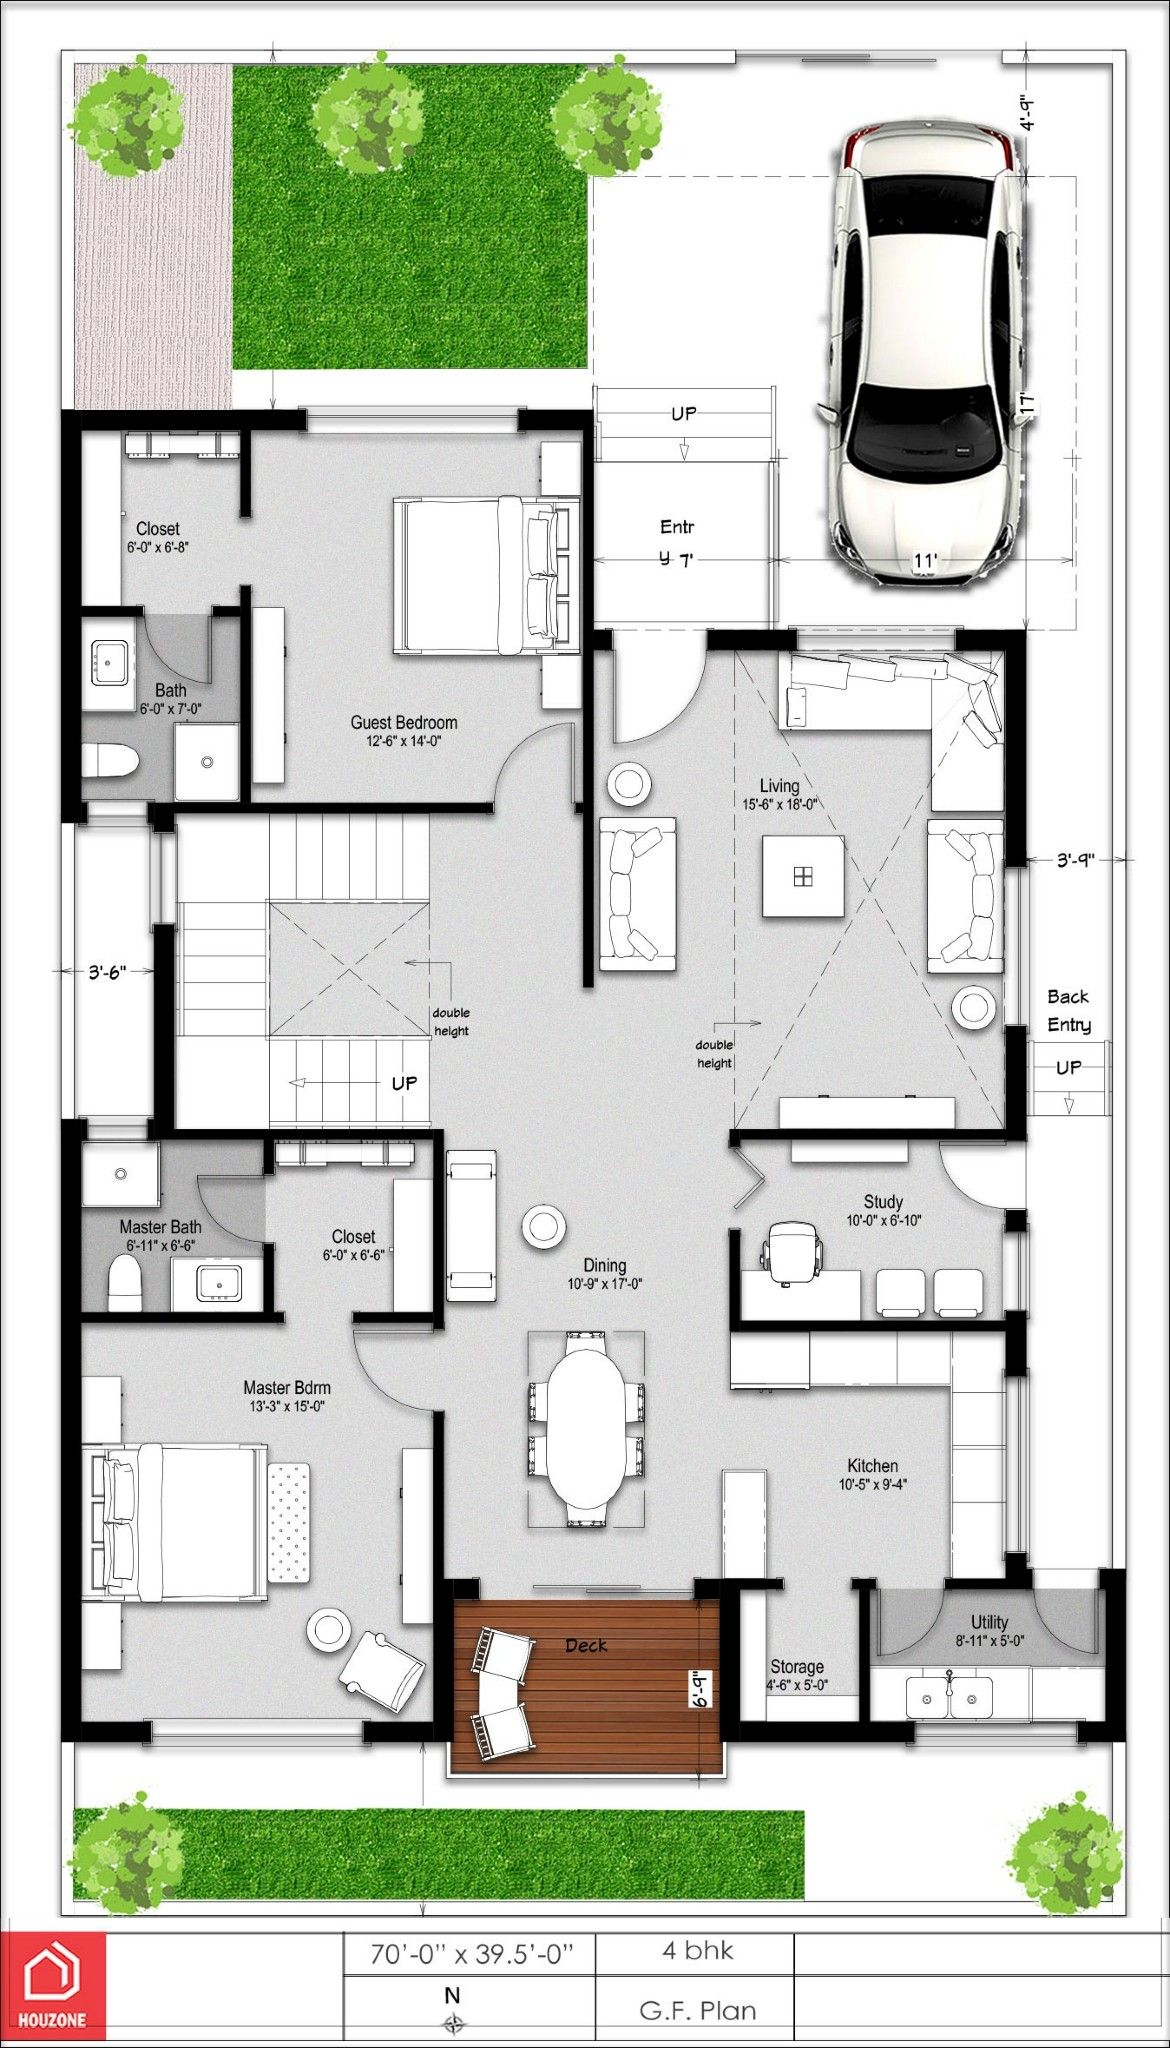 Pin By Akhil Chowdary On Dream House Duplex House Plans Duplex House Design Bungalow House Design